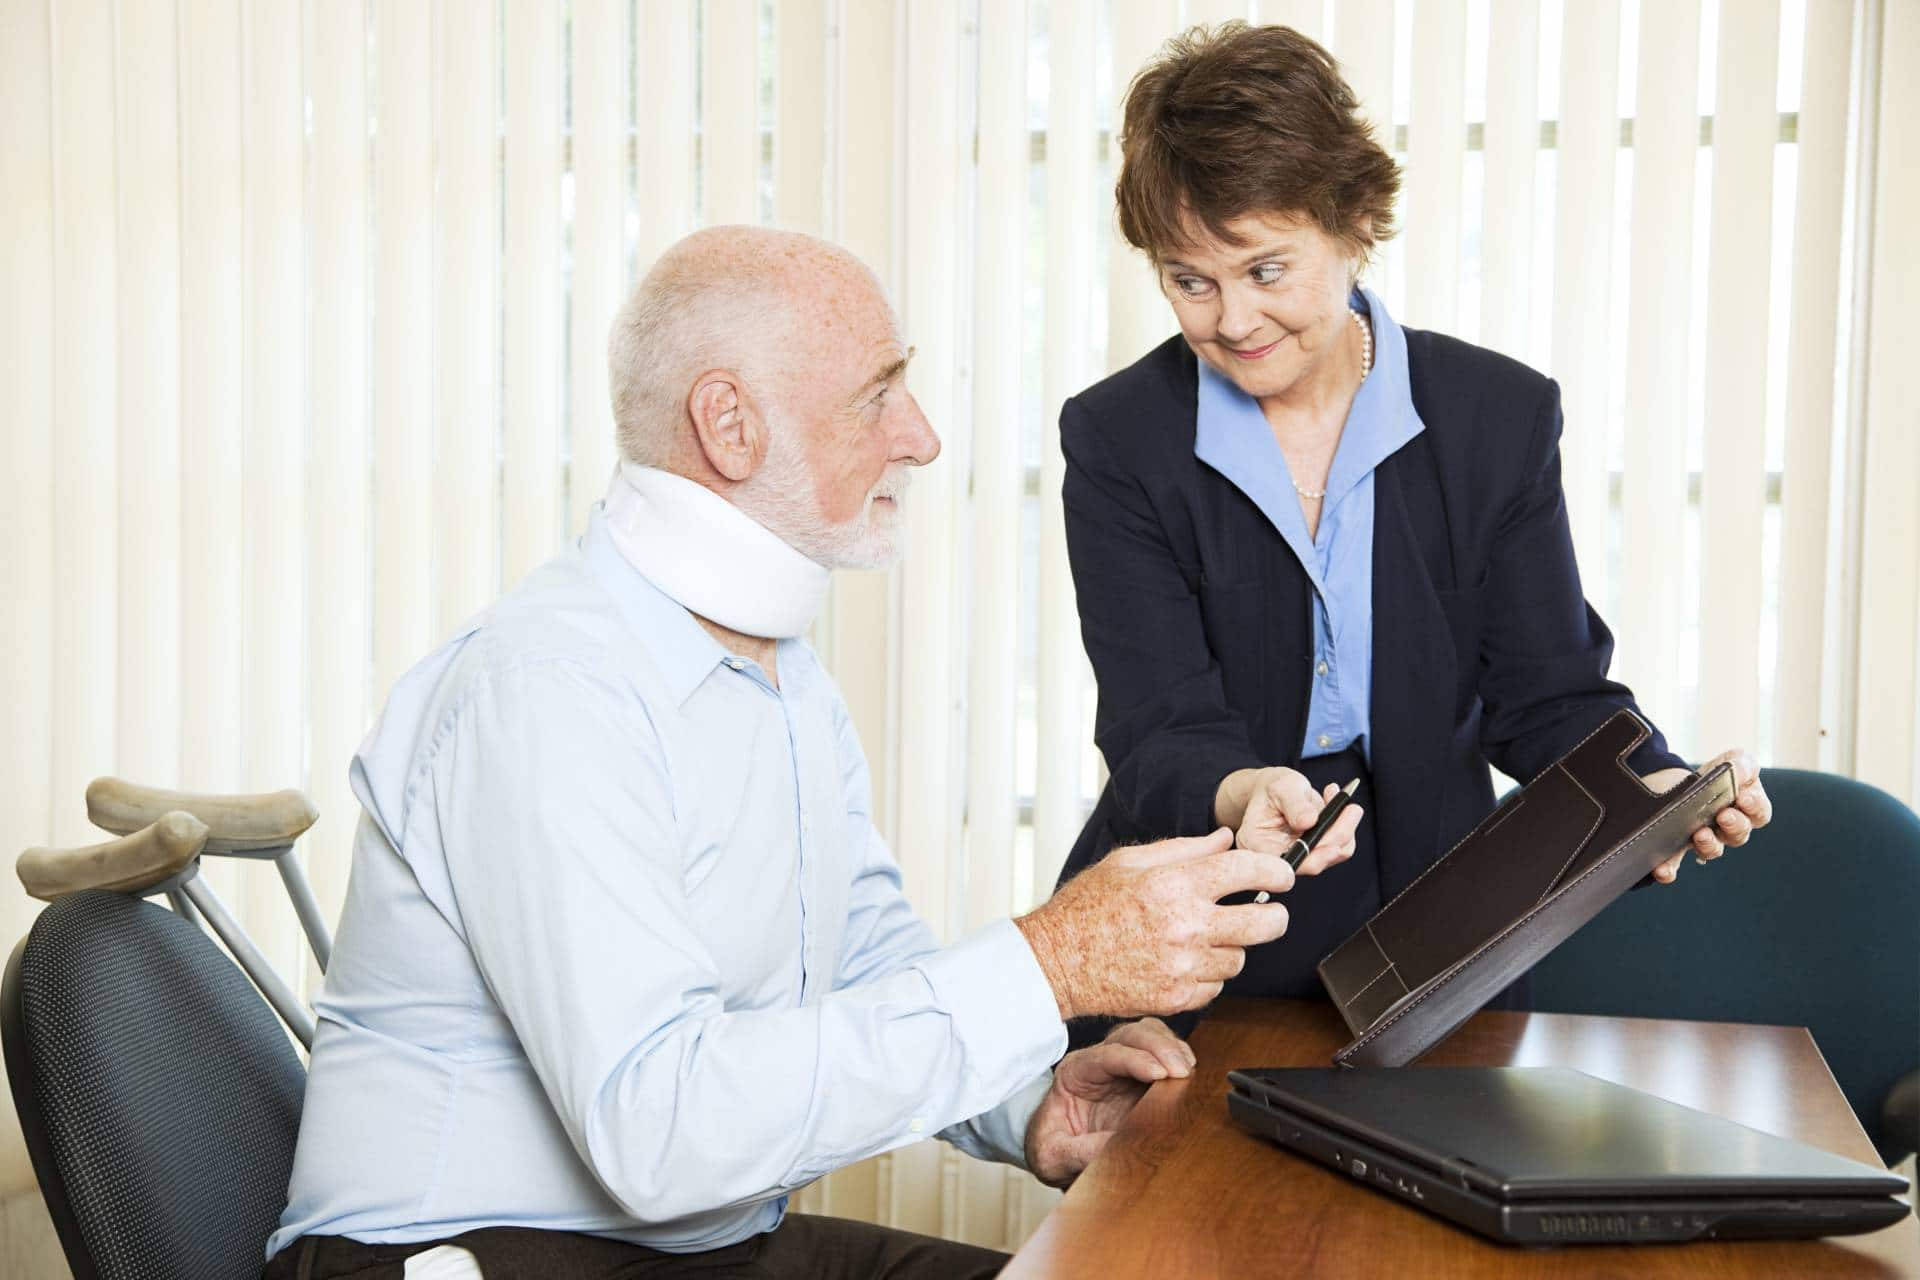 Schedule a free consultation with our personal injury lawyers at the Angell Law Firm in Reynoldstown, Ga.